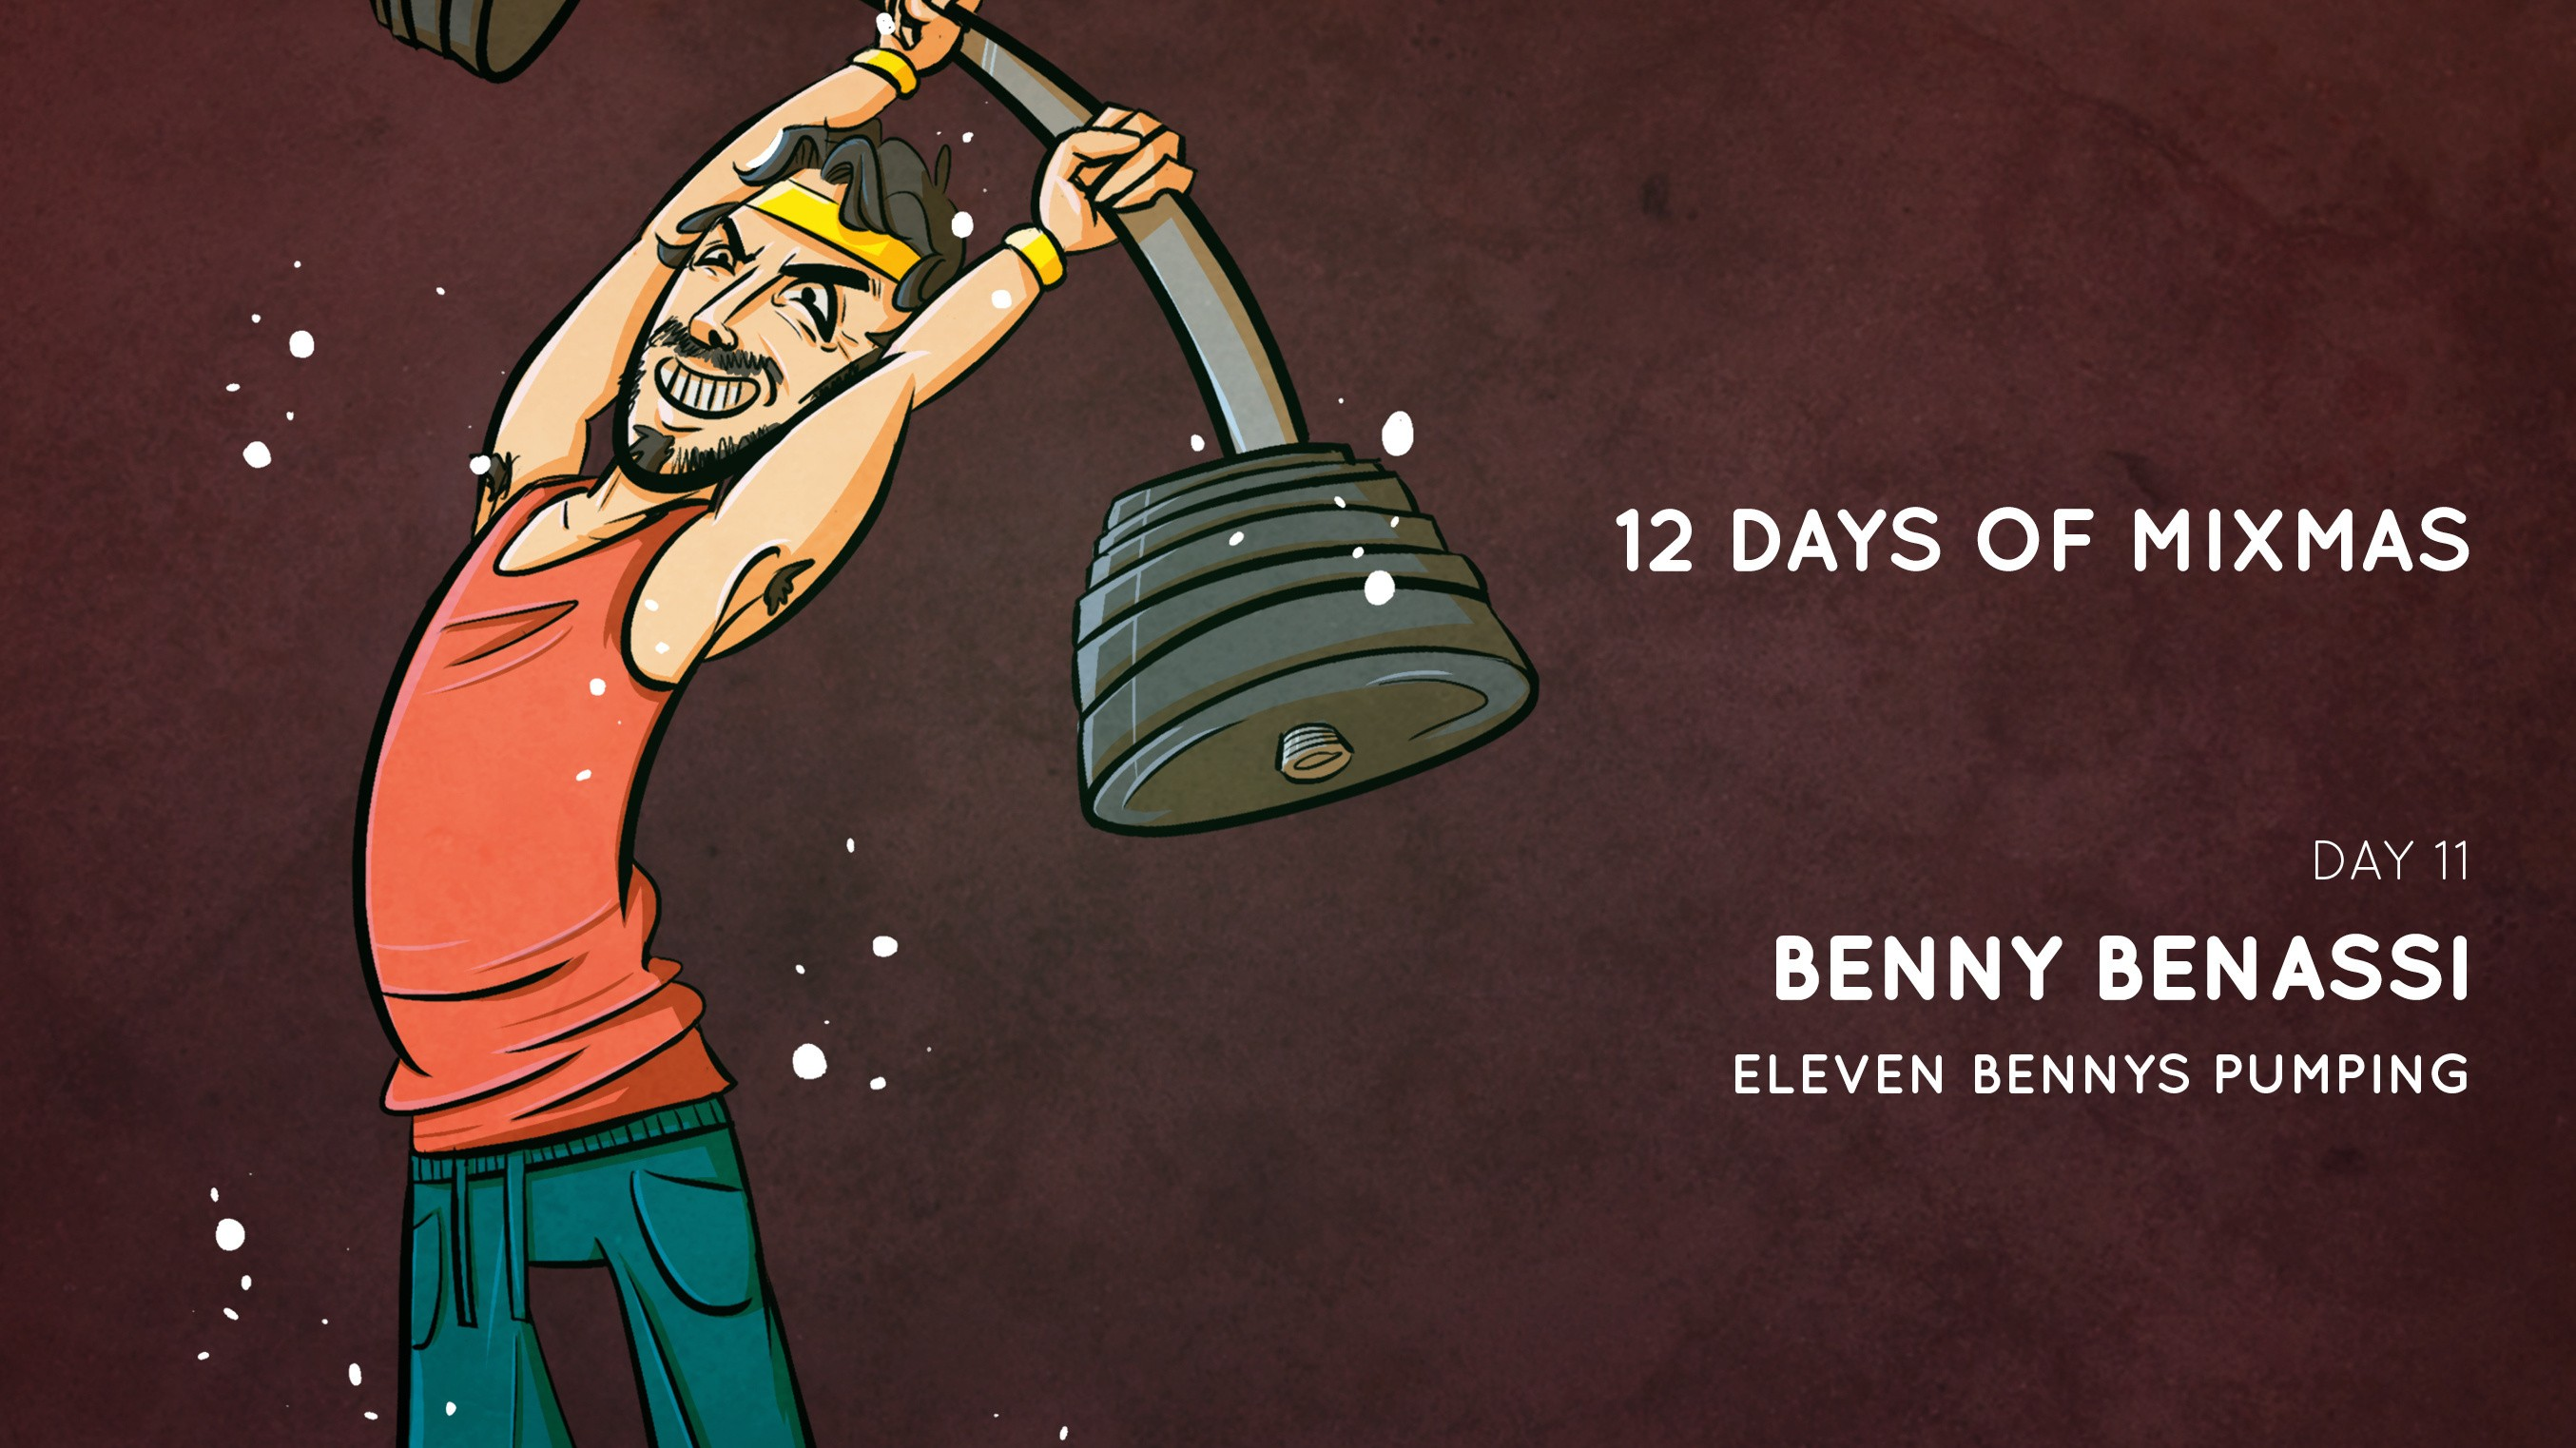 12 Days of Mixmas | Benny Benassi